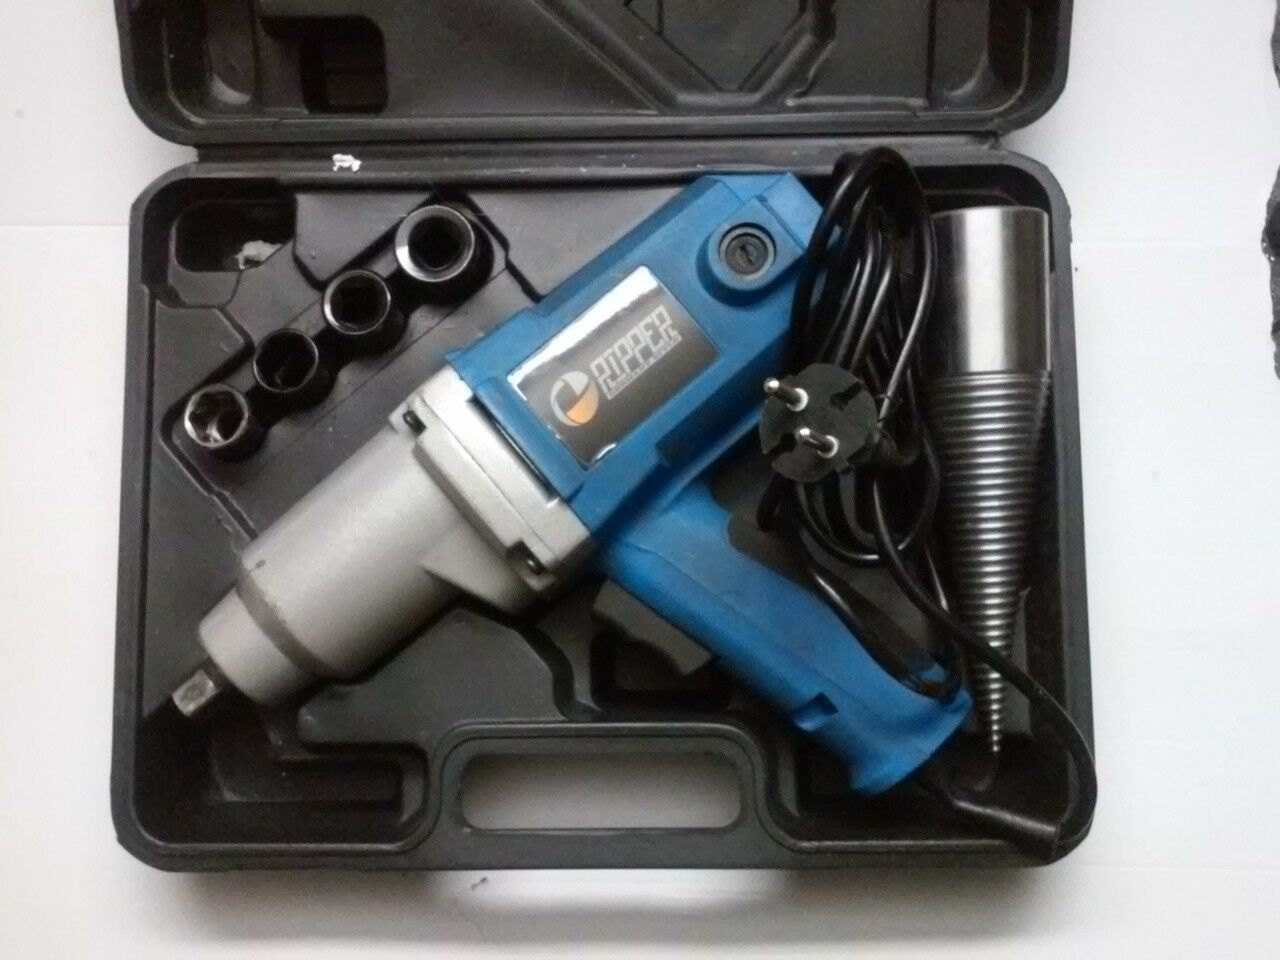 1 2  impact wrench 700 Nm complete set with 4 nuts Log Splitter Cone Screw